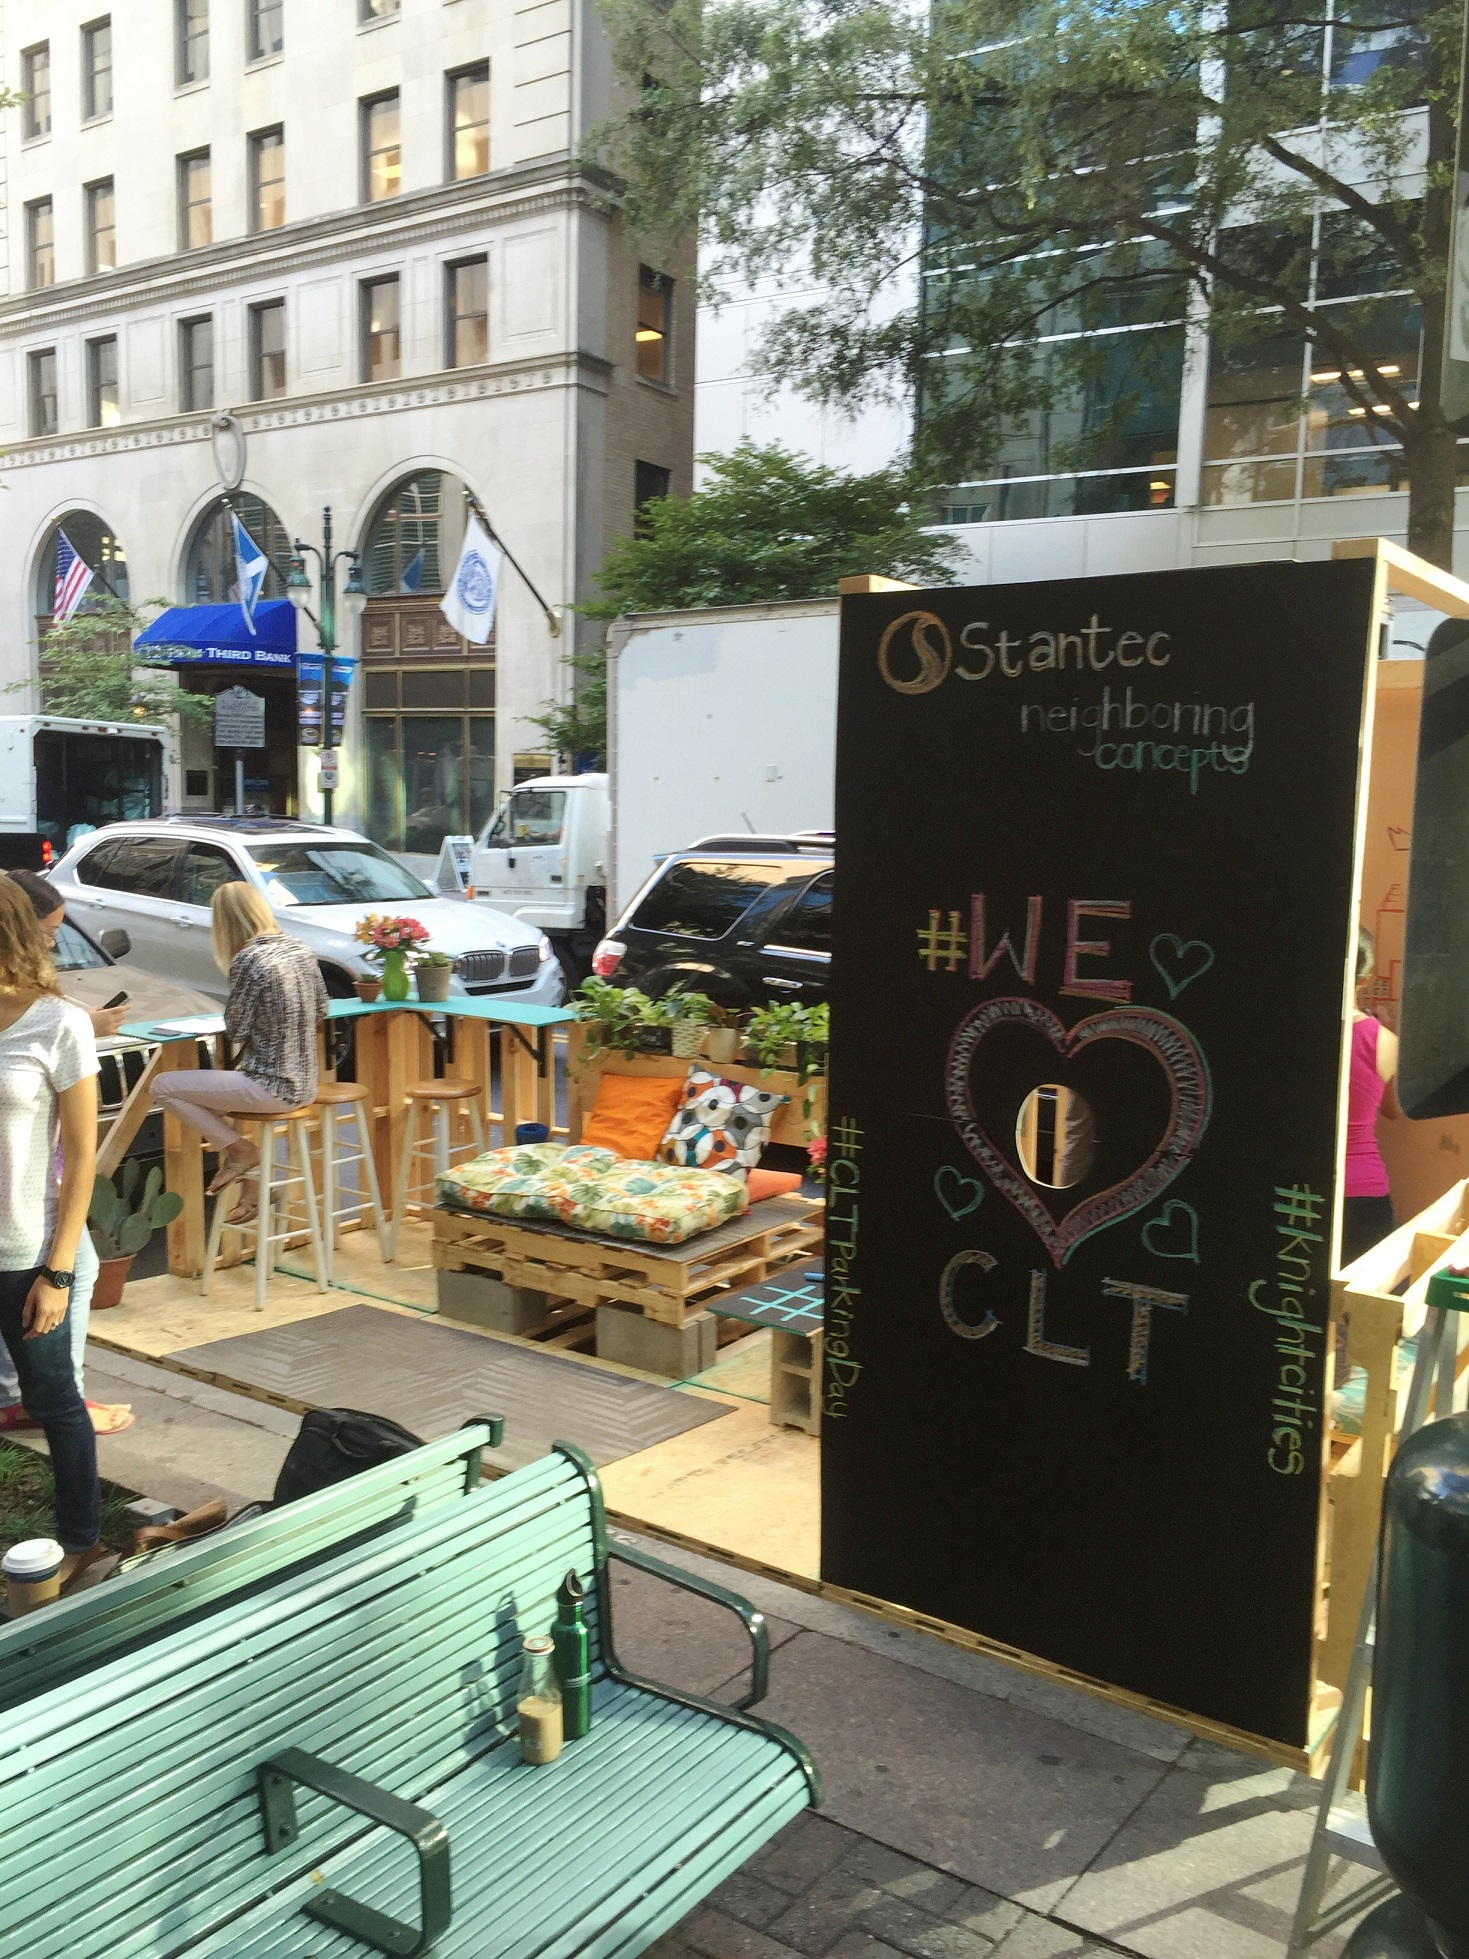 The Charlotte parklet asked people to note what they like most about their city